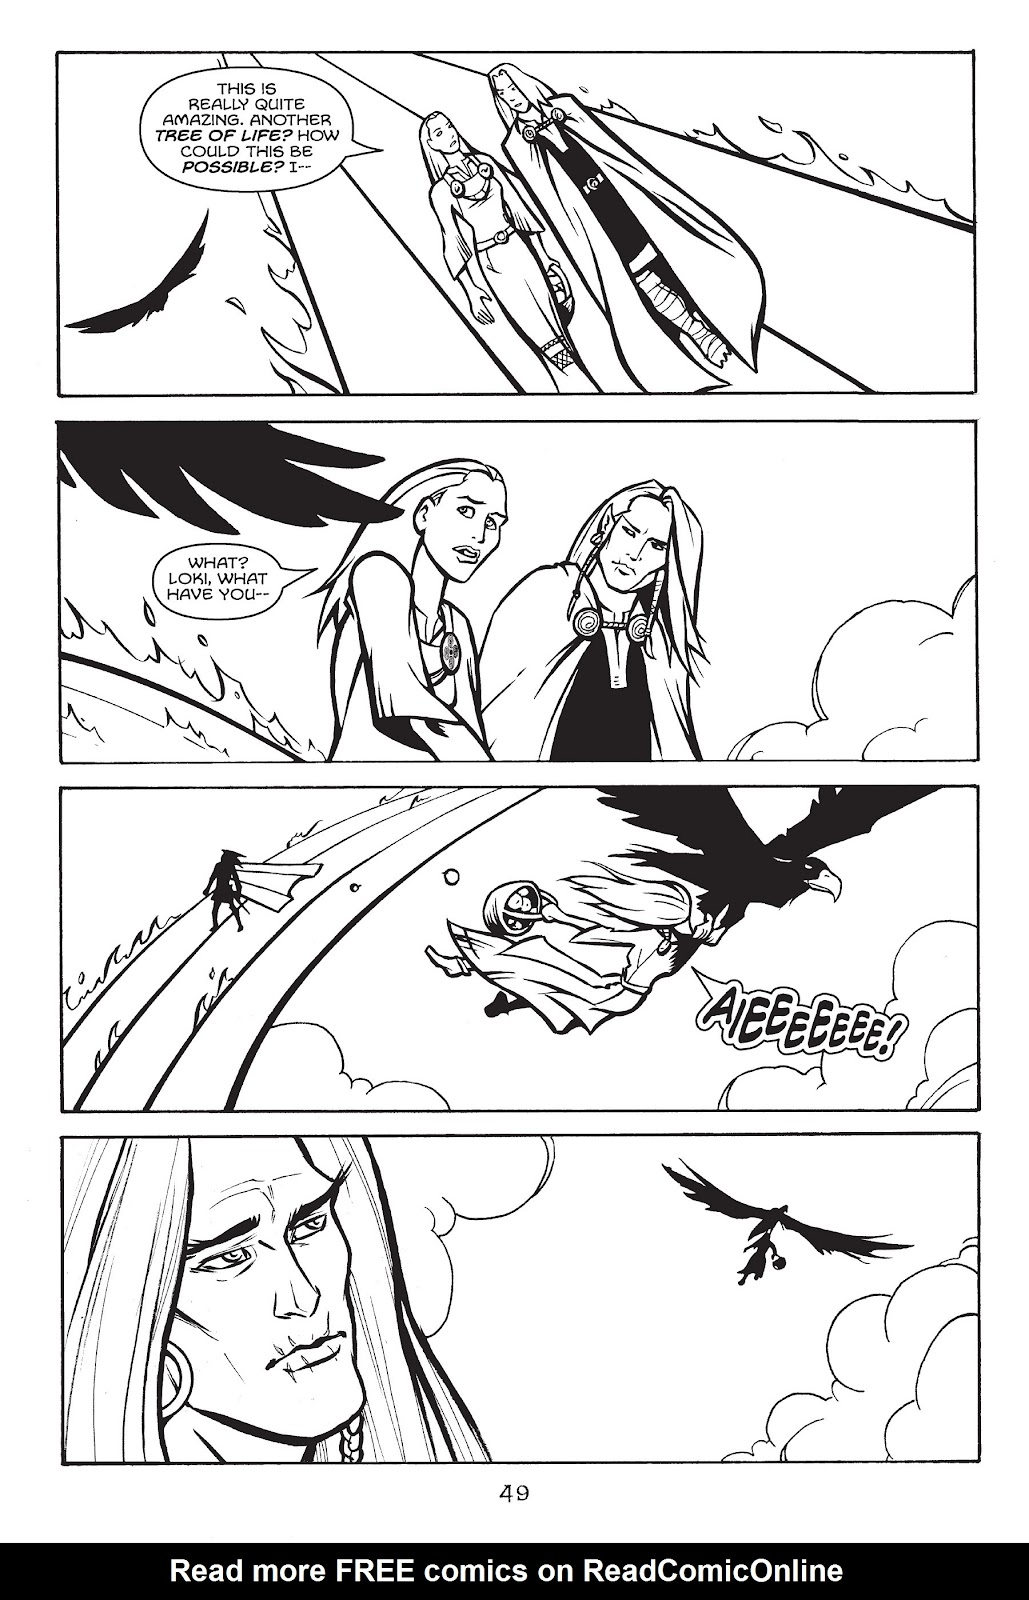 Read online Gods of Asgard comic -  Issue # TPB (Part 1) - 50